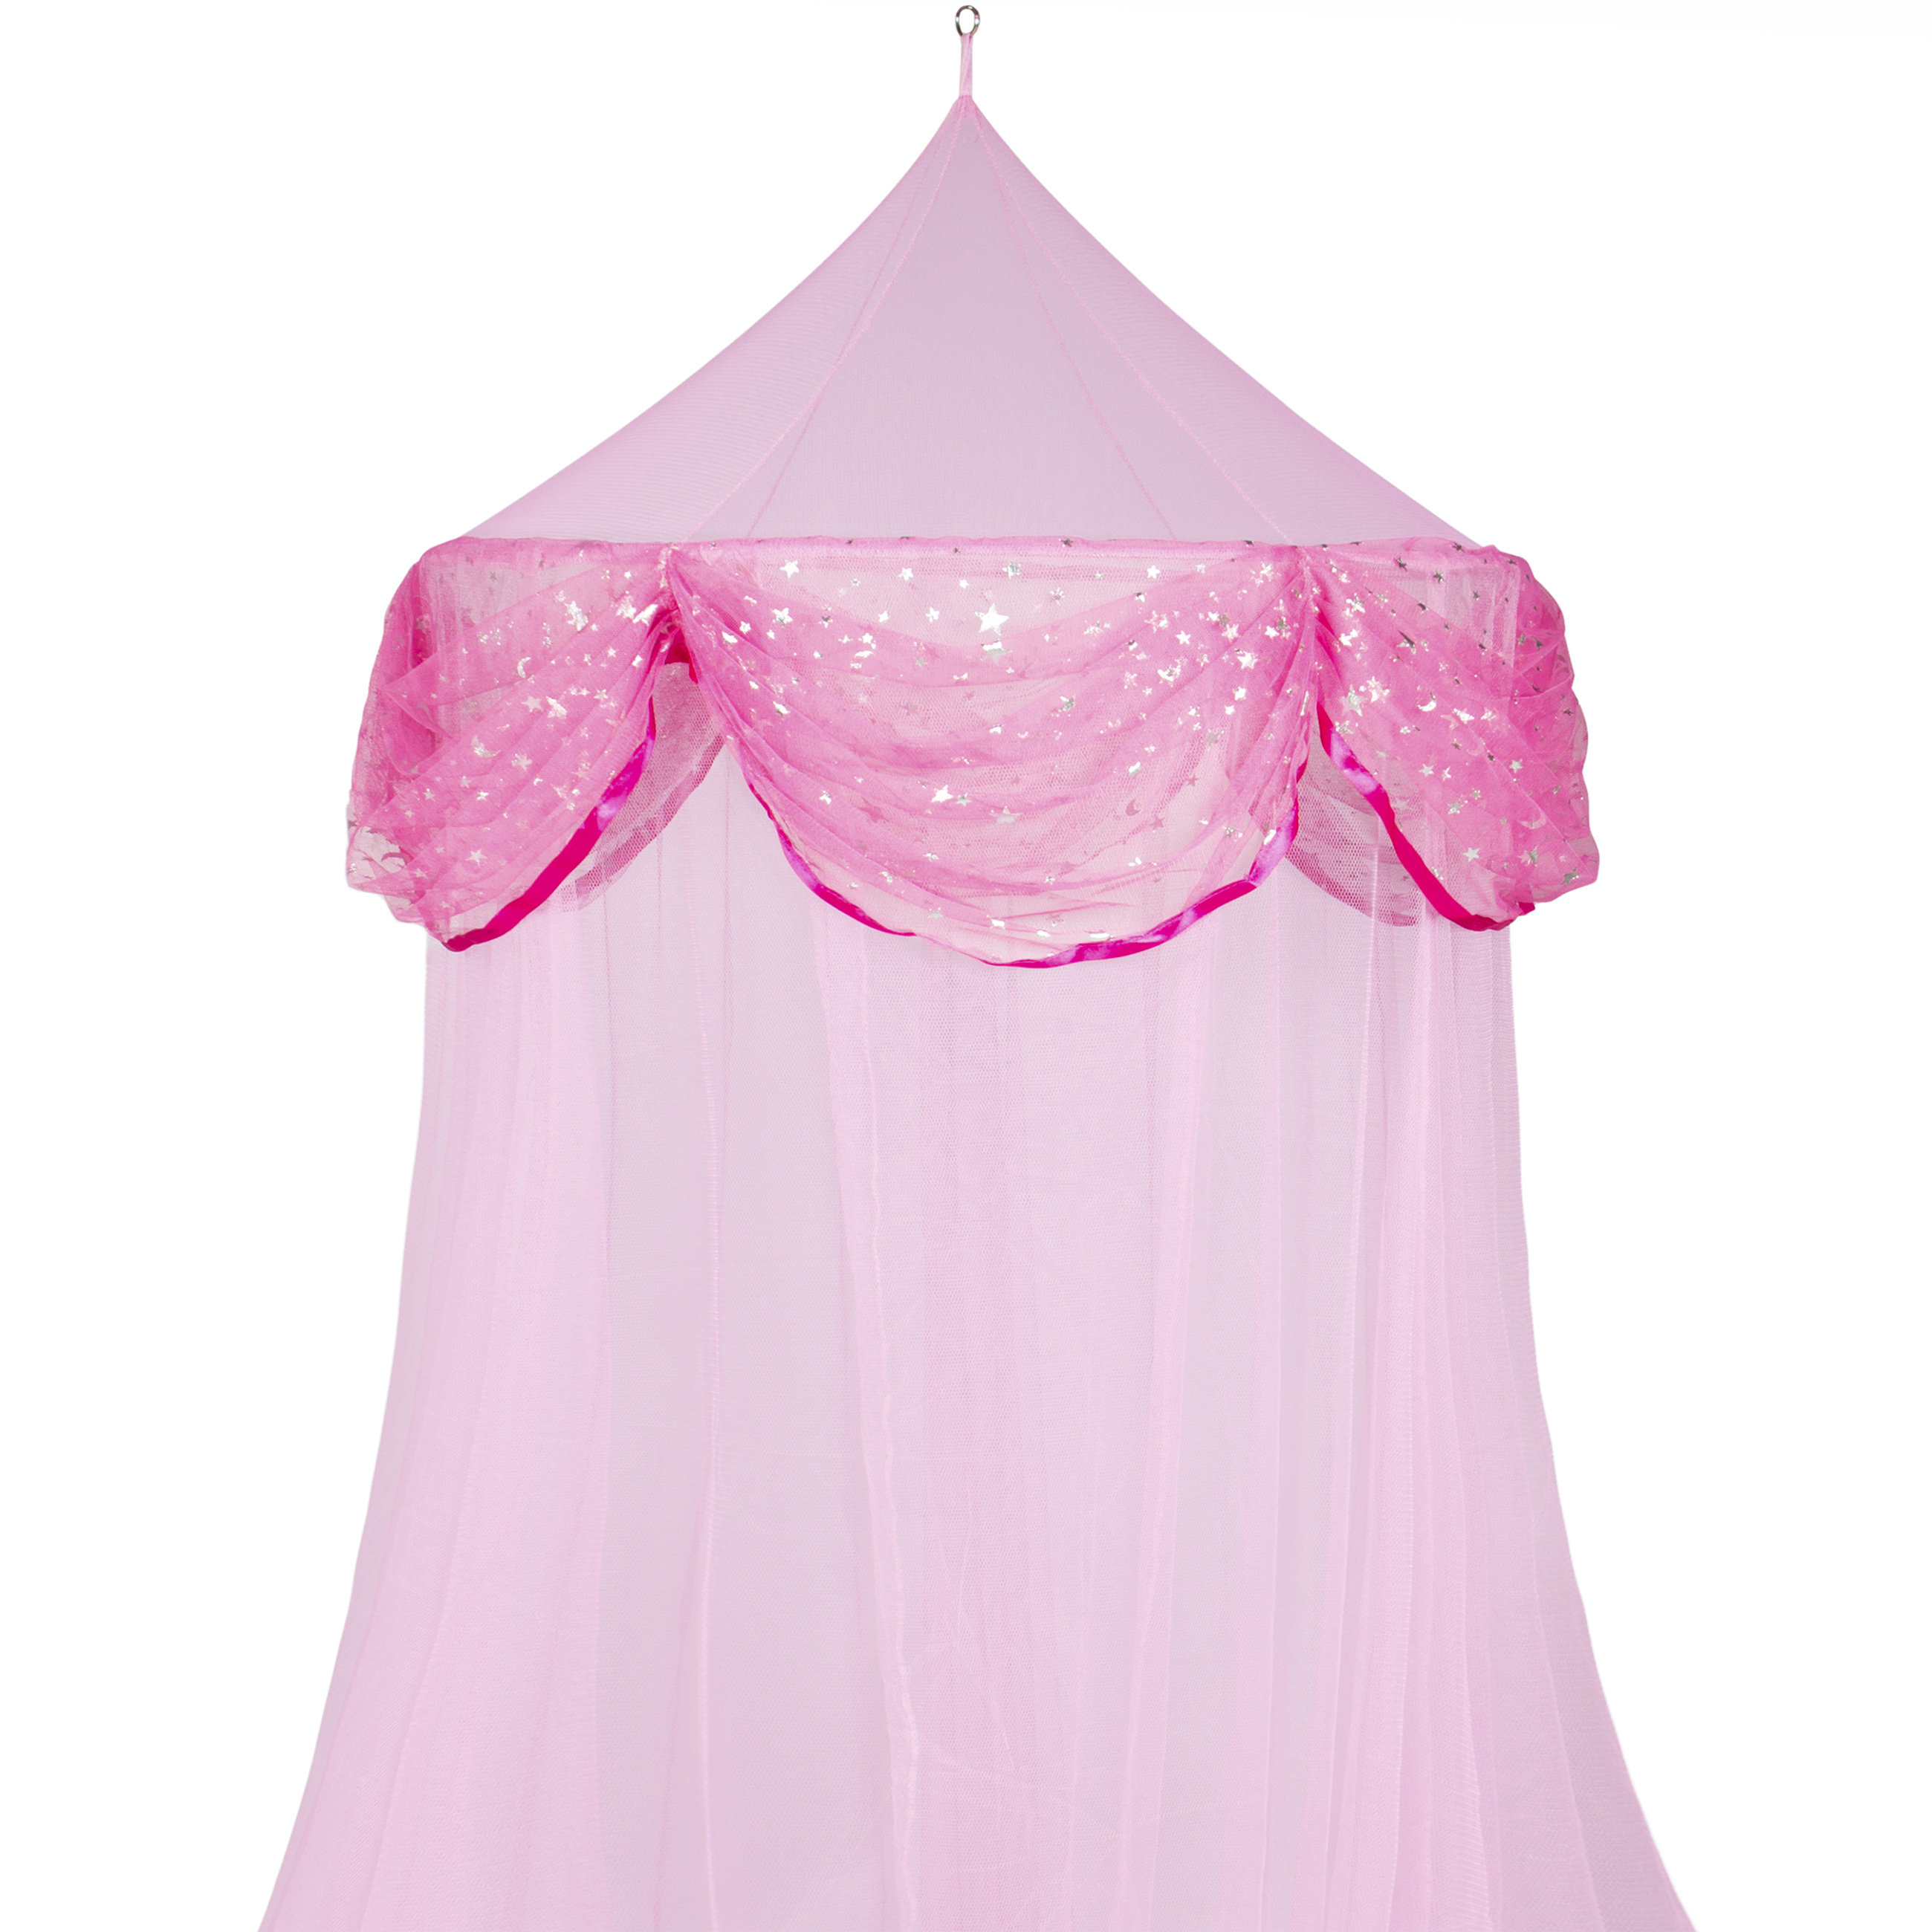 Bed Mosquito Netting Canopy Pink Princess Bedding Bed